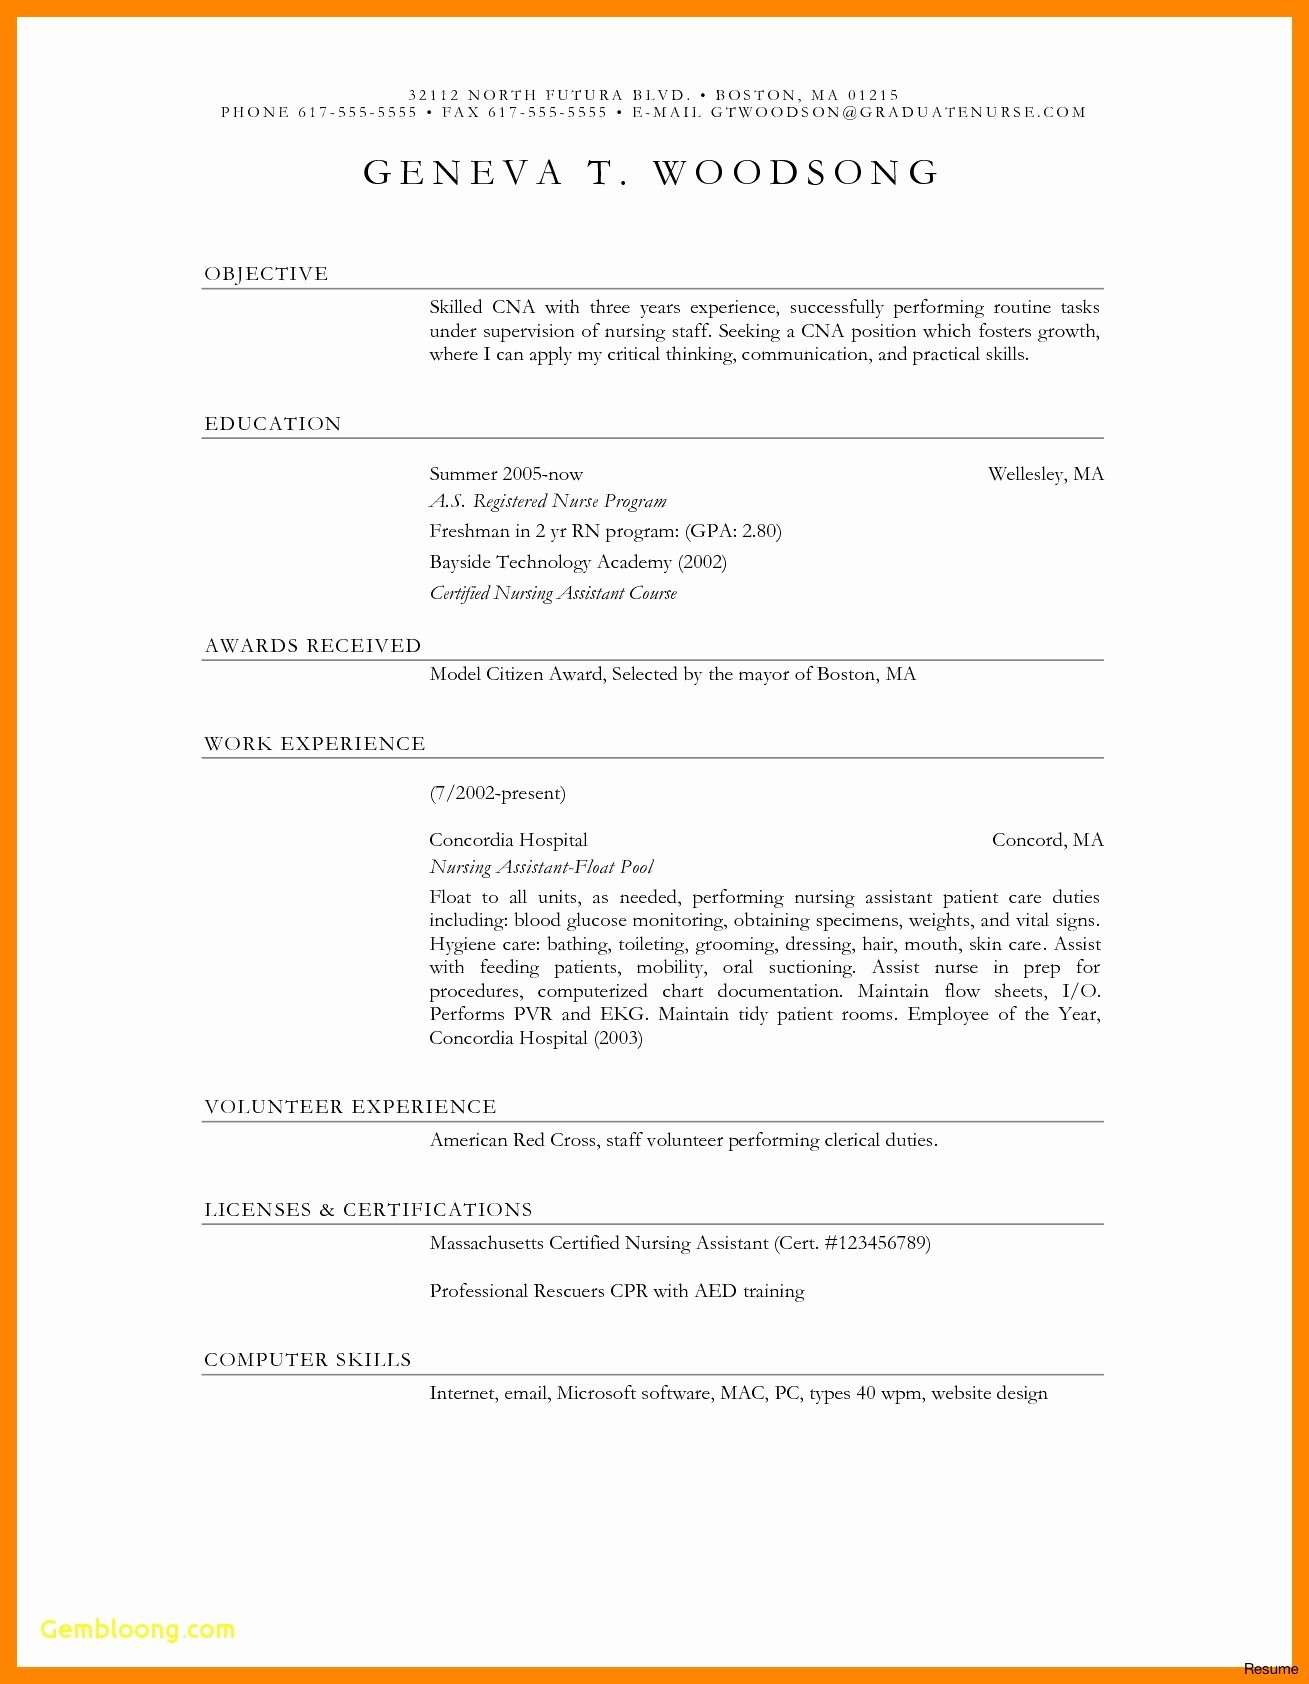 Cna Resume Template Microsoft Word - Cna Resume Examples Elegant Best 36 Cna Resume for Hospital How to